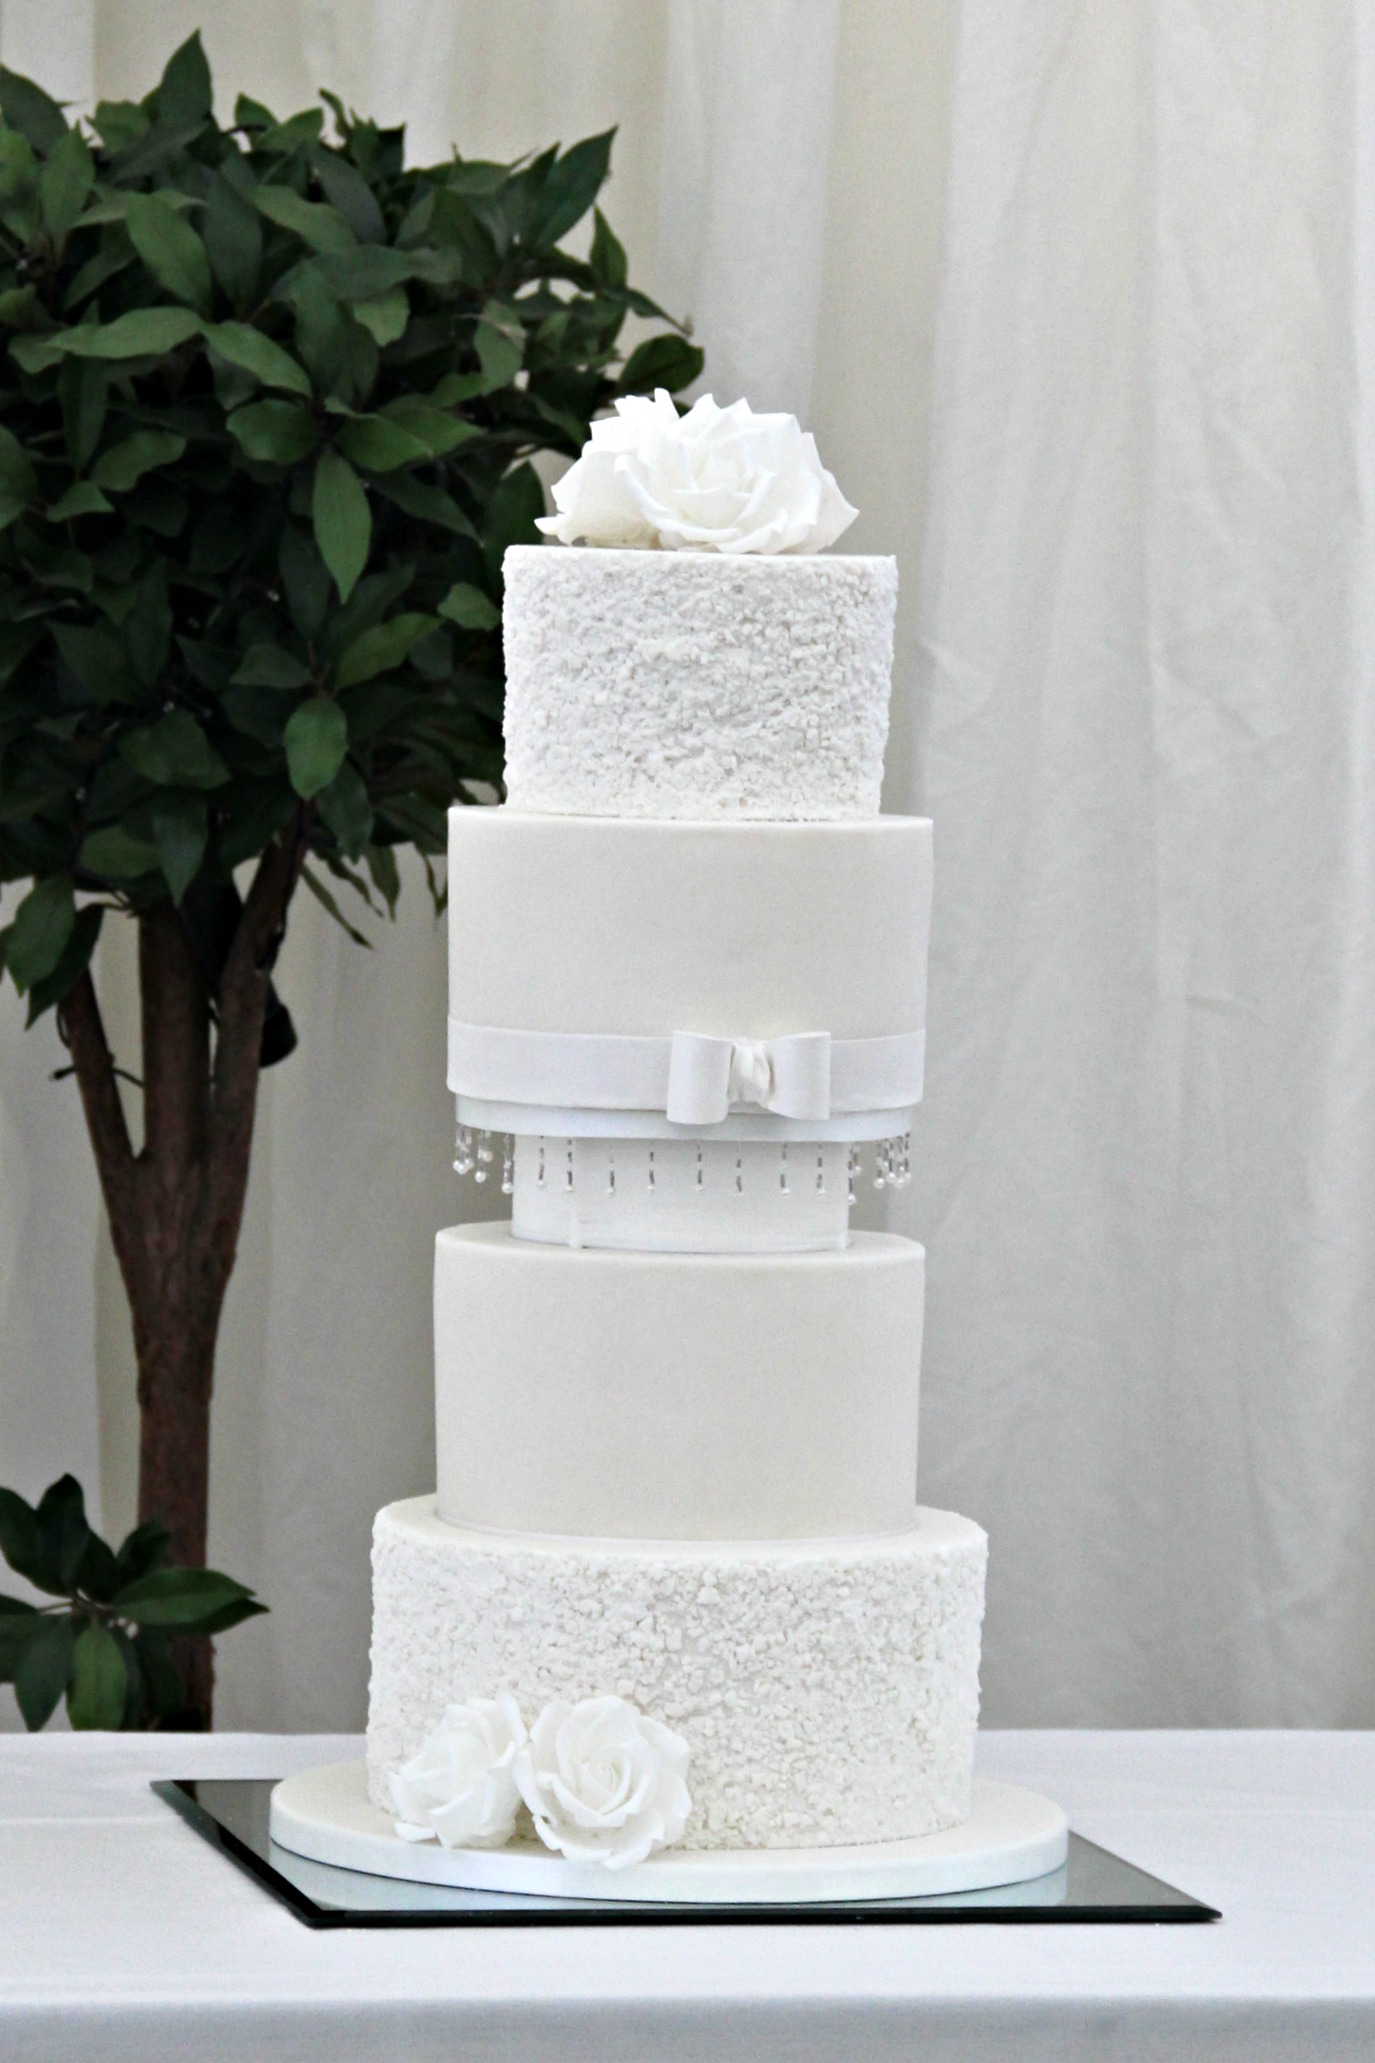 Dolce Lusso Cakes 3 tier wedding cake grey gold marble